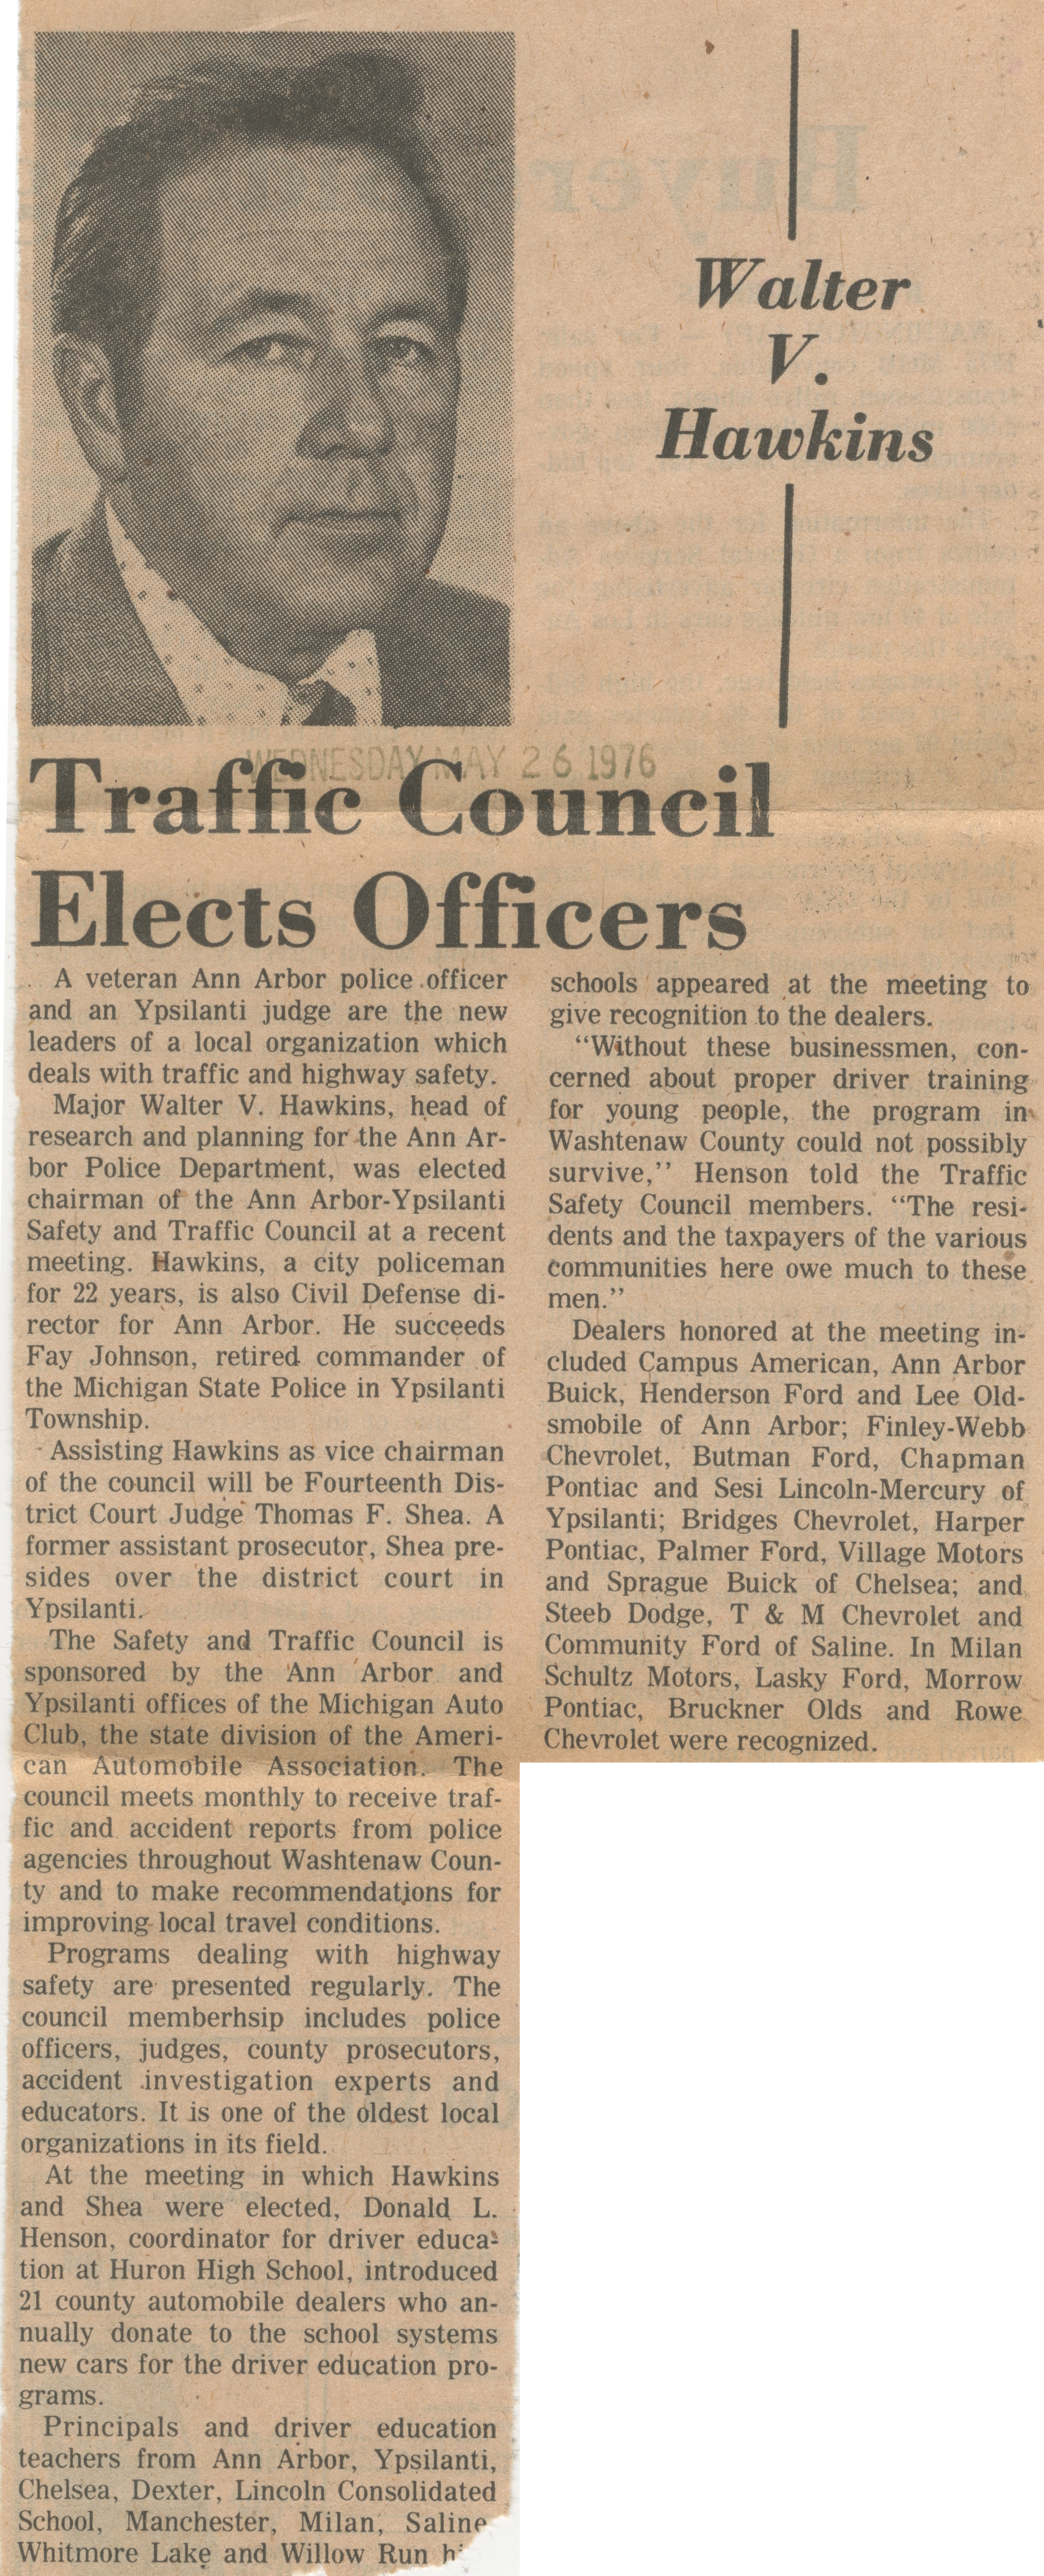 Traffic Council Elects Officers image